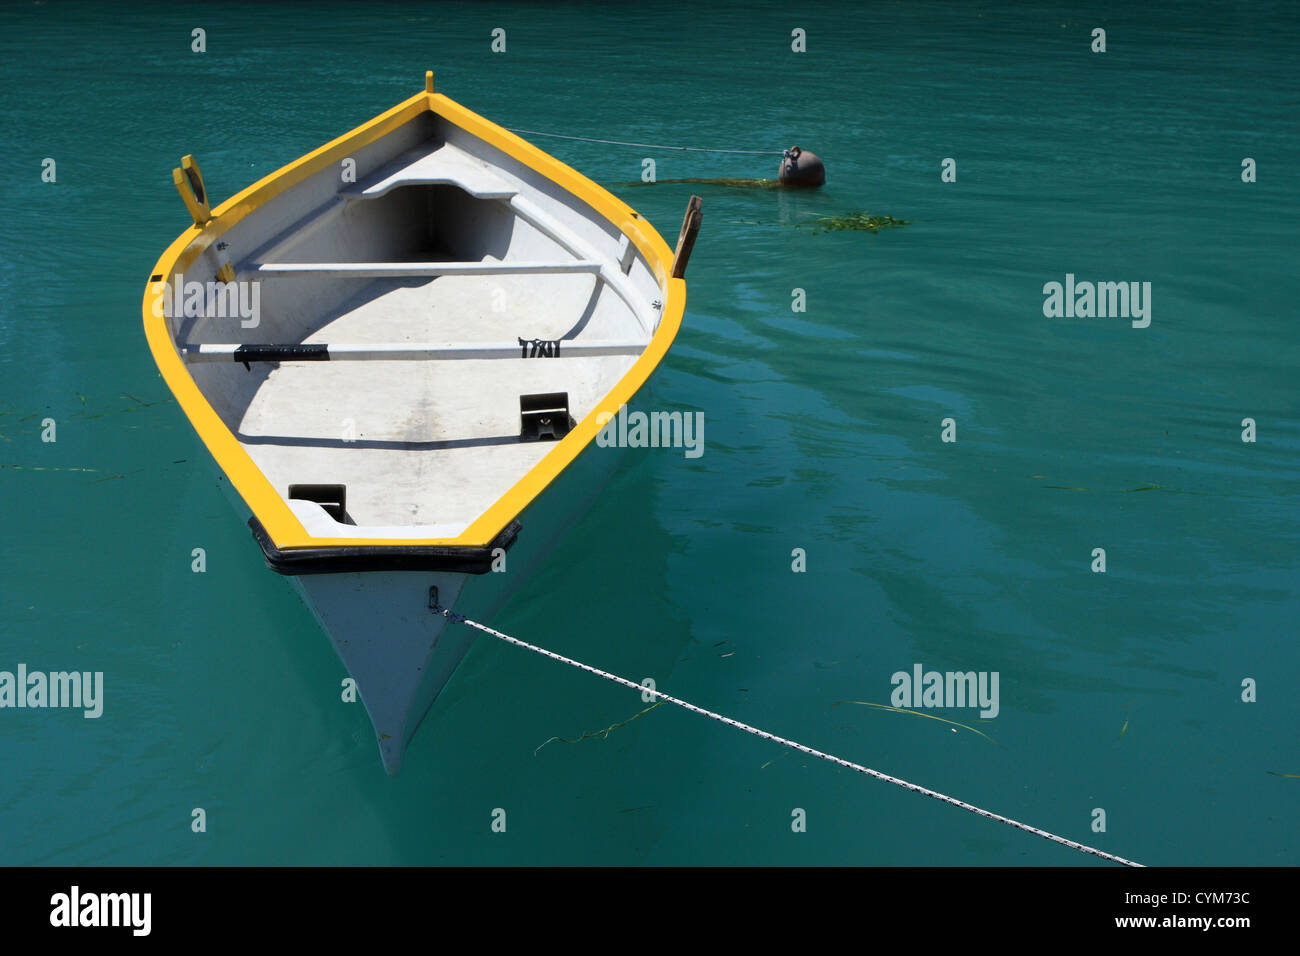 A yellow and white rowing boat on deep green water, plenty of copy space - Stock Image